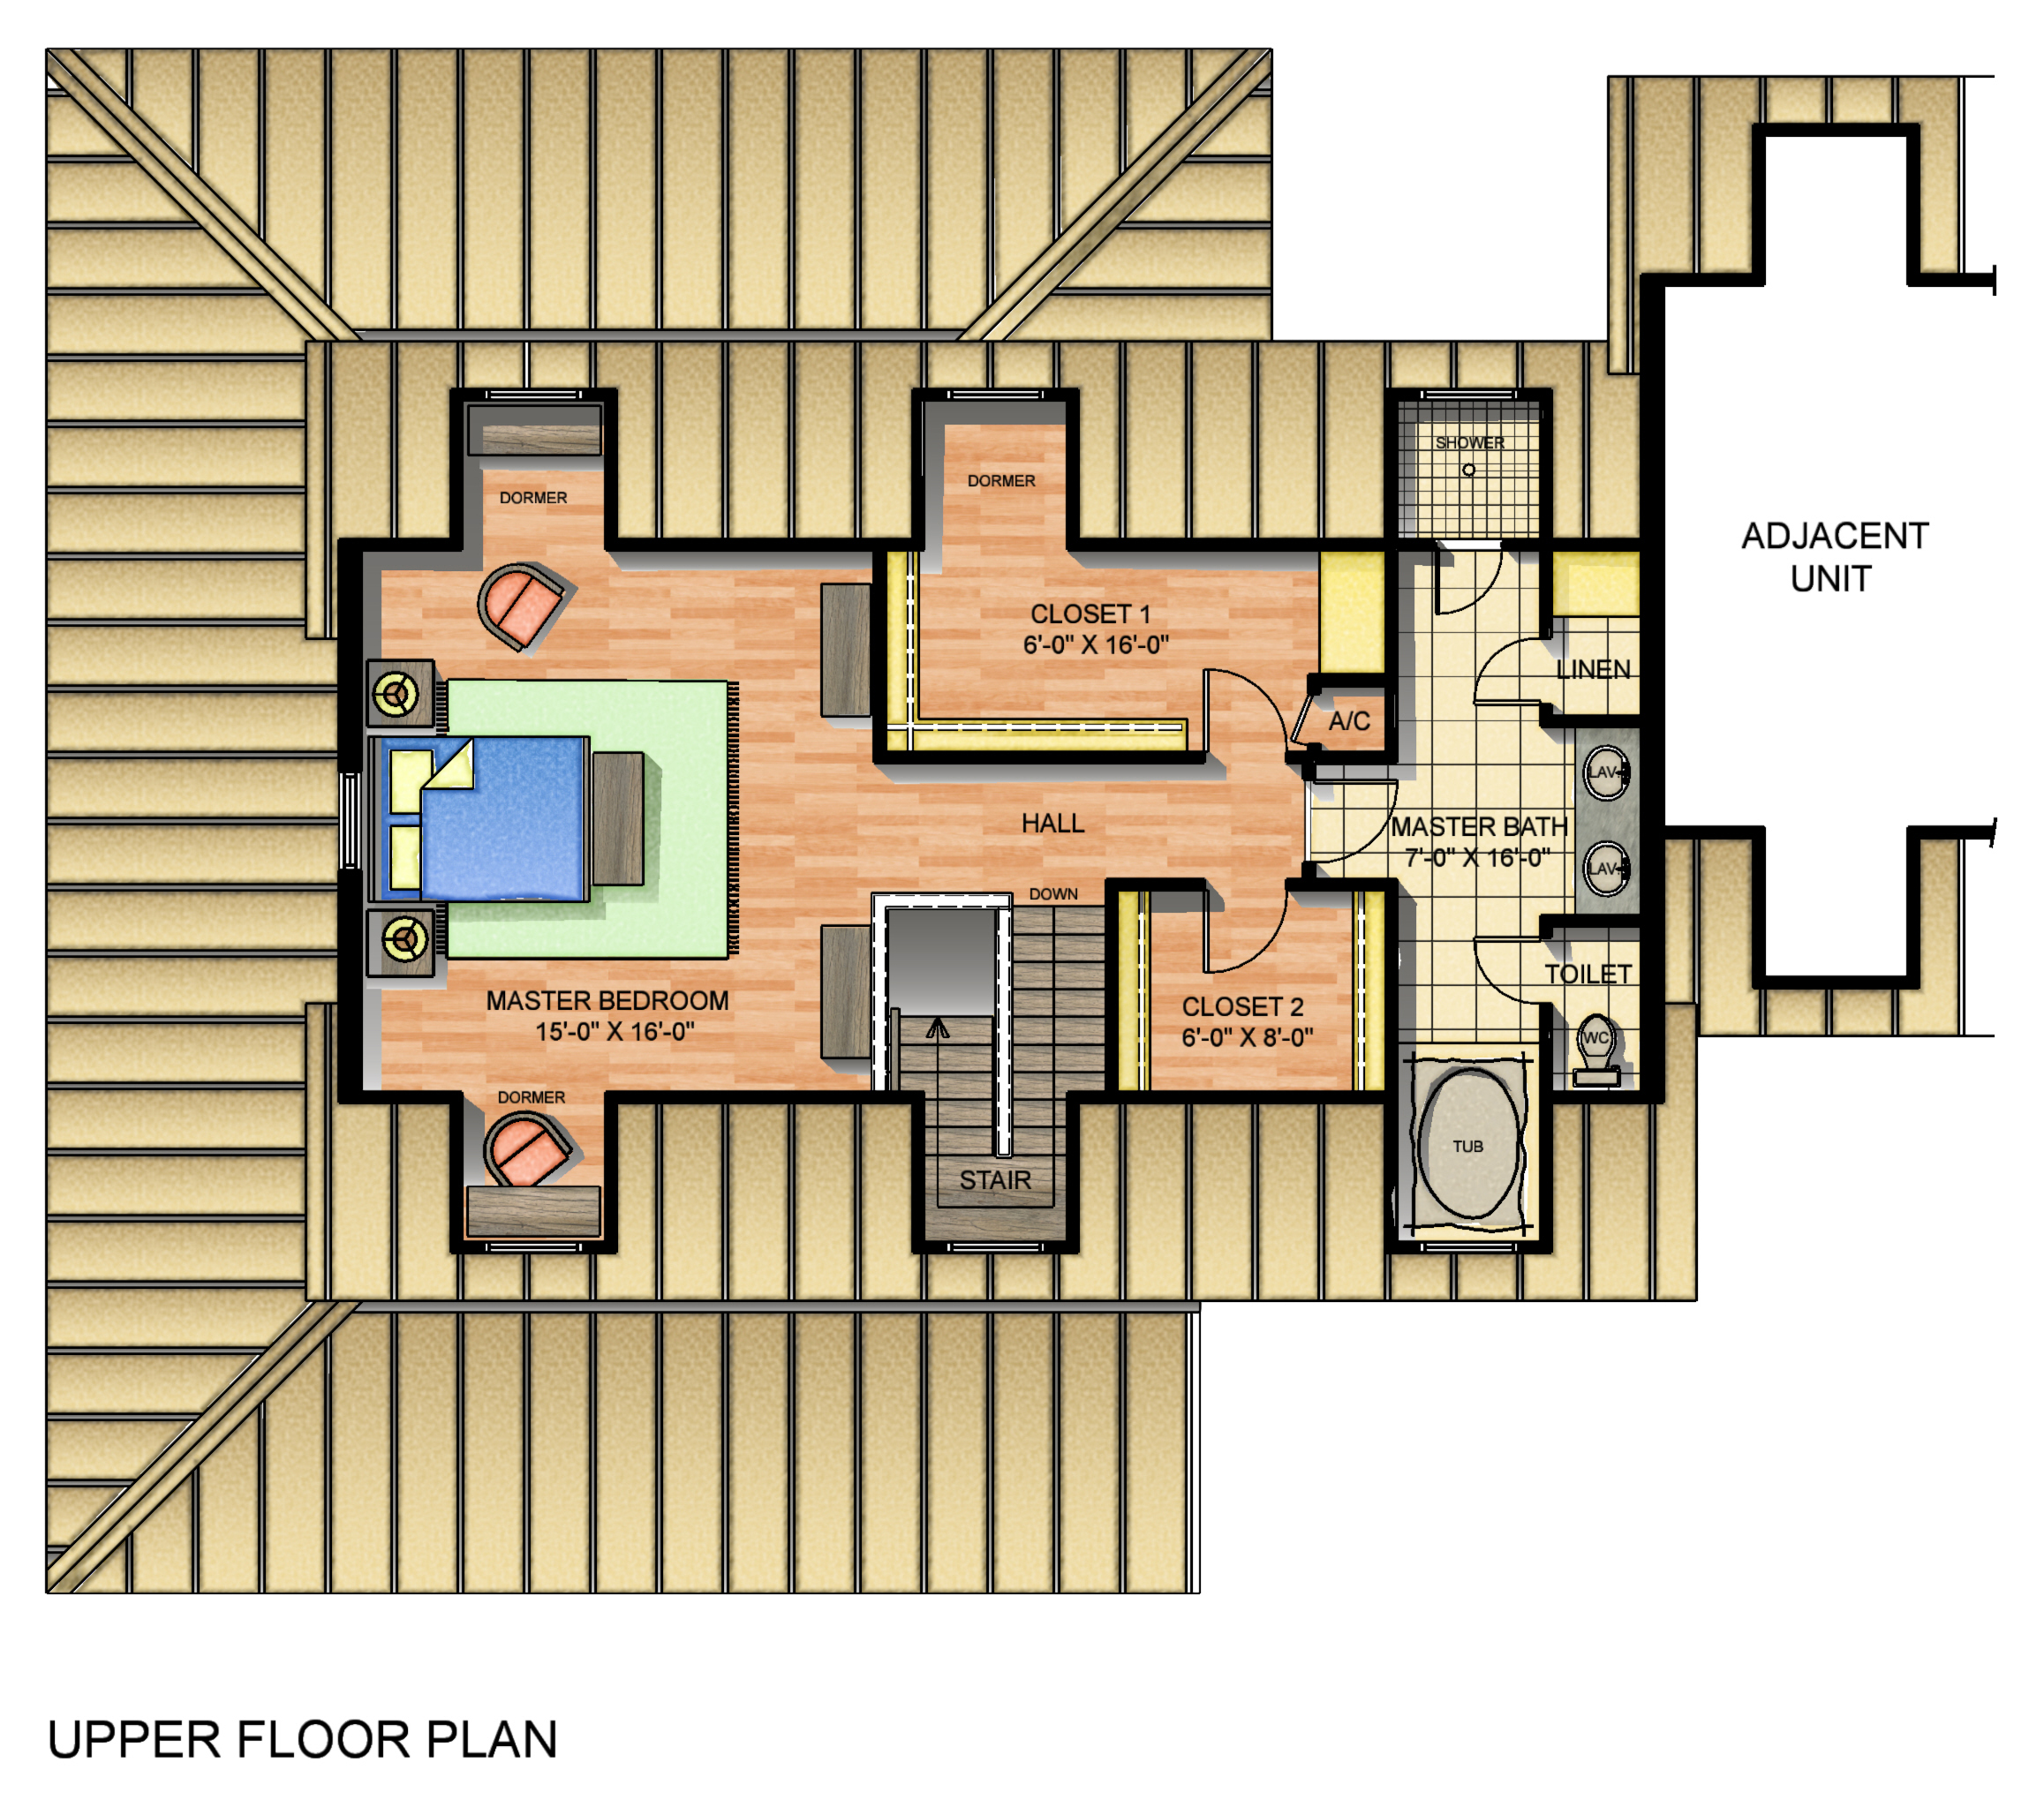 Typical Unit Upper floor plan